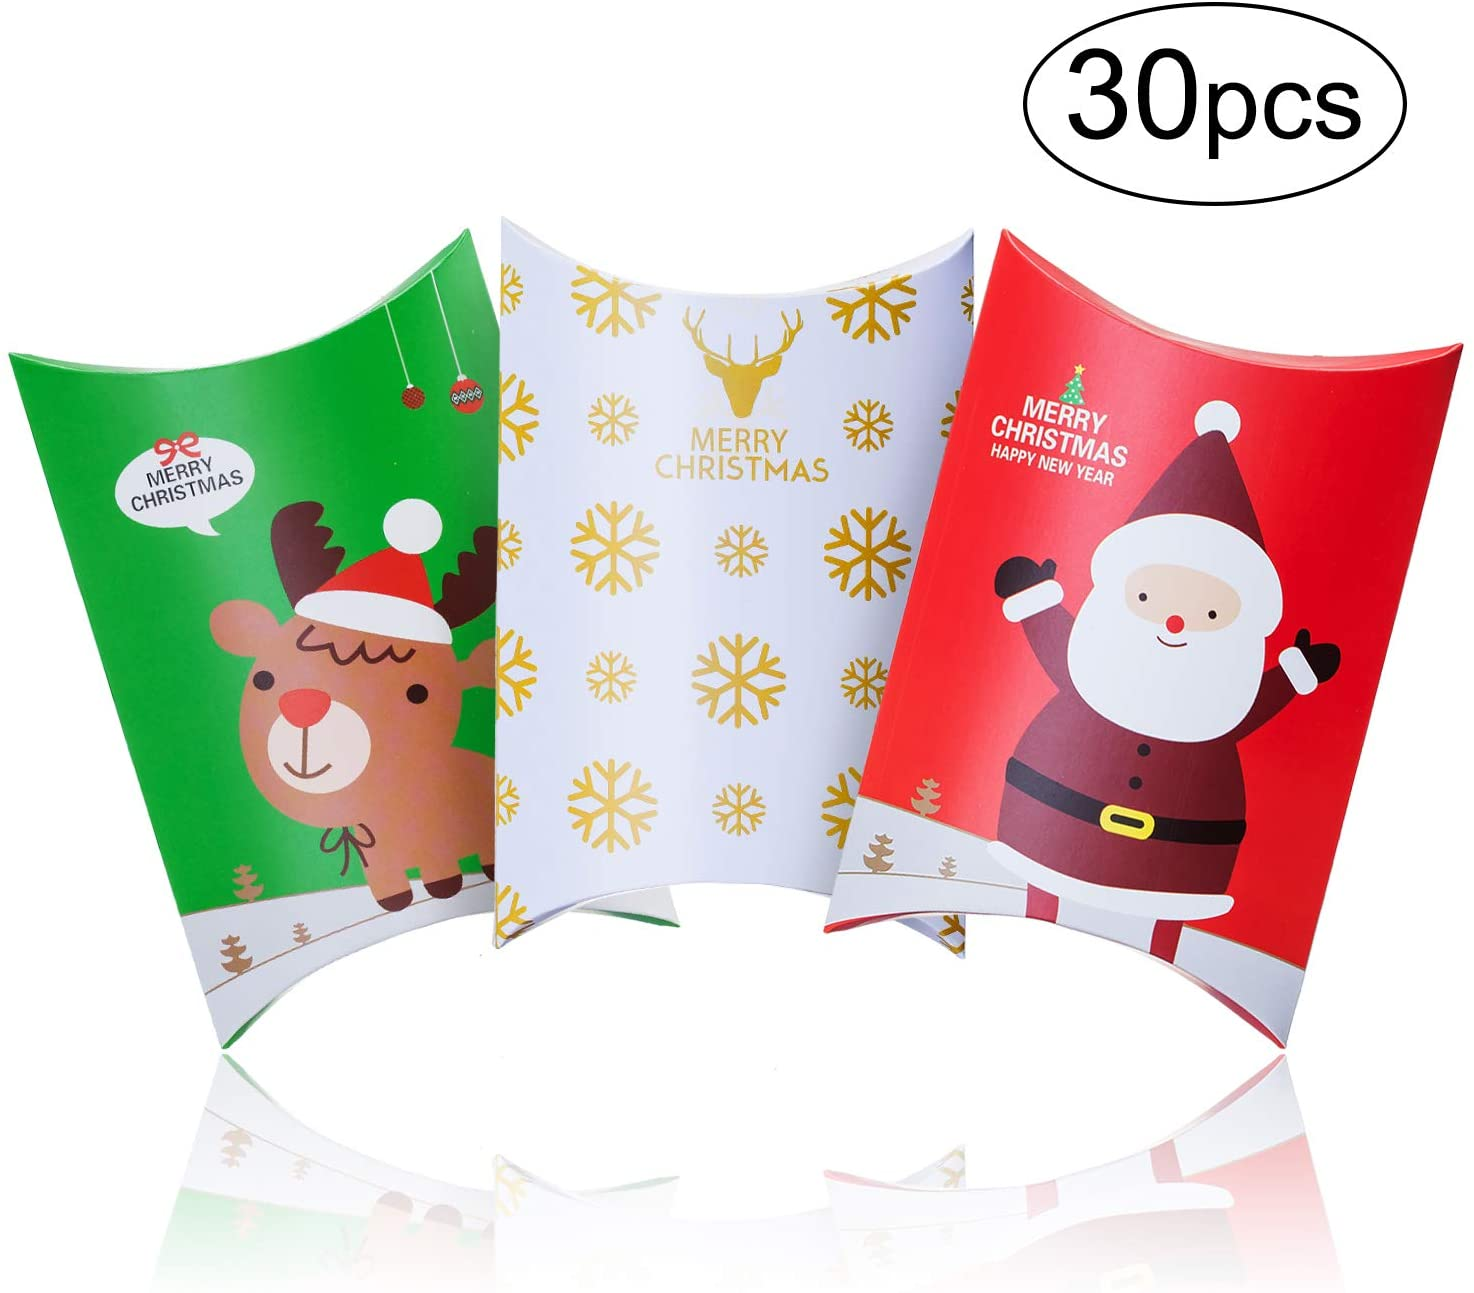 30pcs Christmas Candy Boxes Paper Favor Pillow Boxes Gift Treat Box for Xmas Christmas Party